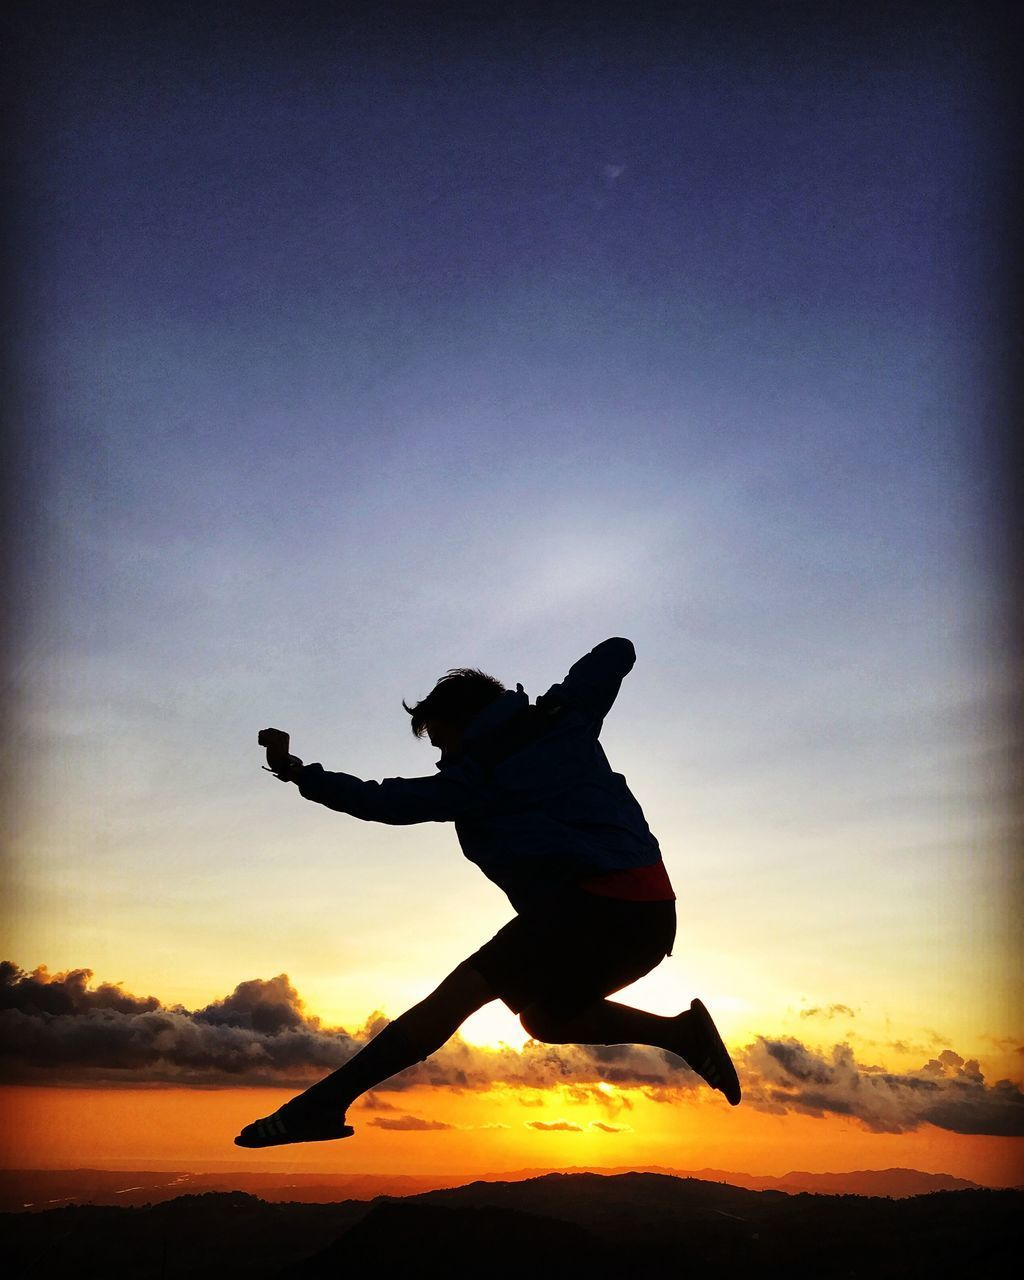 sky, one person, sunset, silhouette, real people, leisure activity, lifestyles, full length, men, orange color, human arm, nature, cloud - sky, jumping, sport, vitality, beauty in nature, side view, skill, outdoors, excitement, arms raised